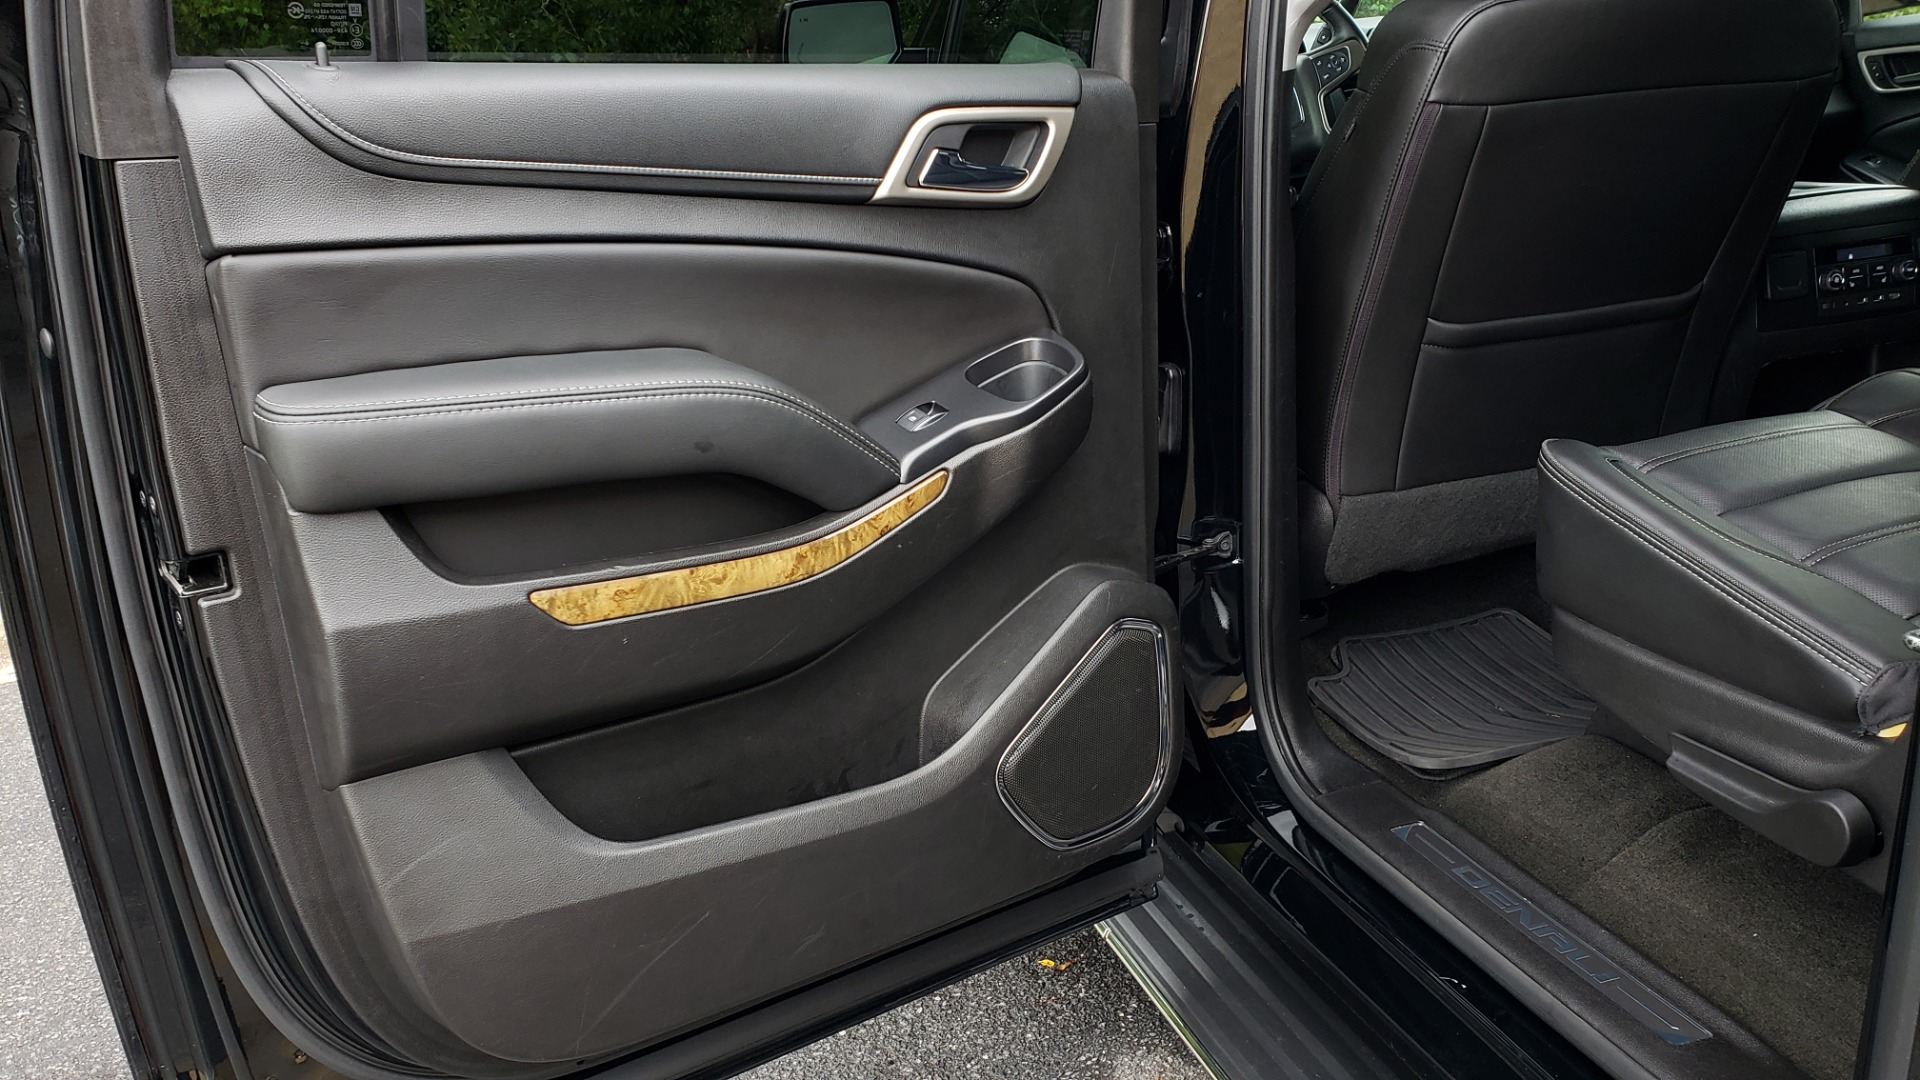 Used 2017 GMC YUKON XL DENALI 4WD / NAV / SUNROOF / ENT / 3-ROWS / BOSE / REARVIEW for sale Sold at Formula Imports in Charlotte NC 28227 64